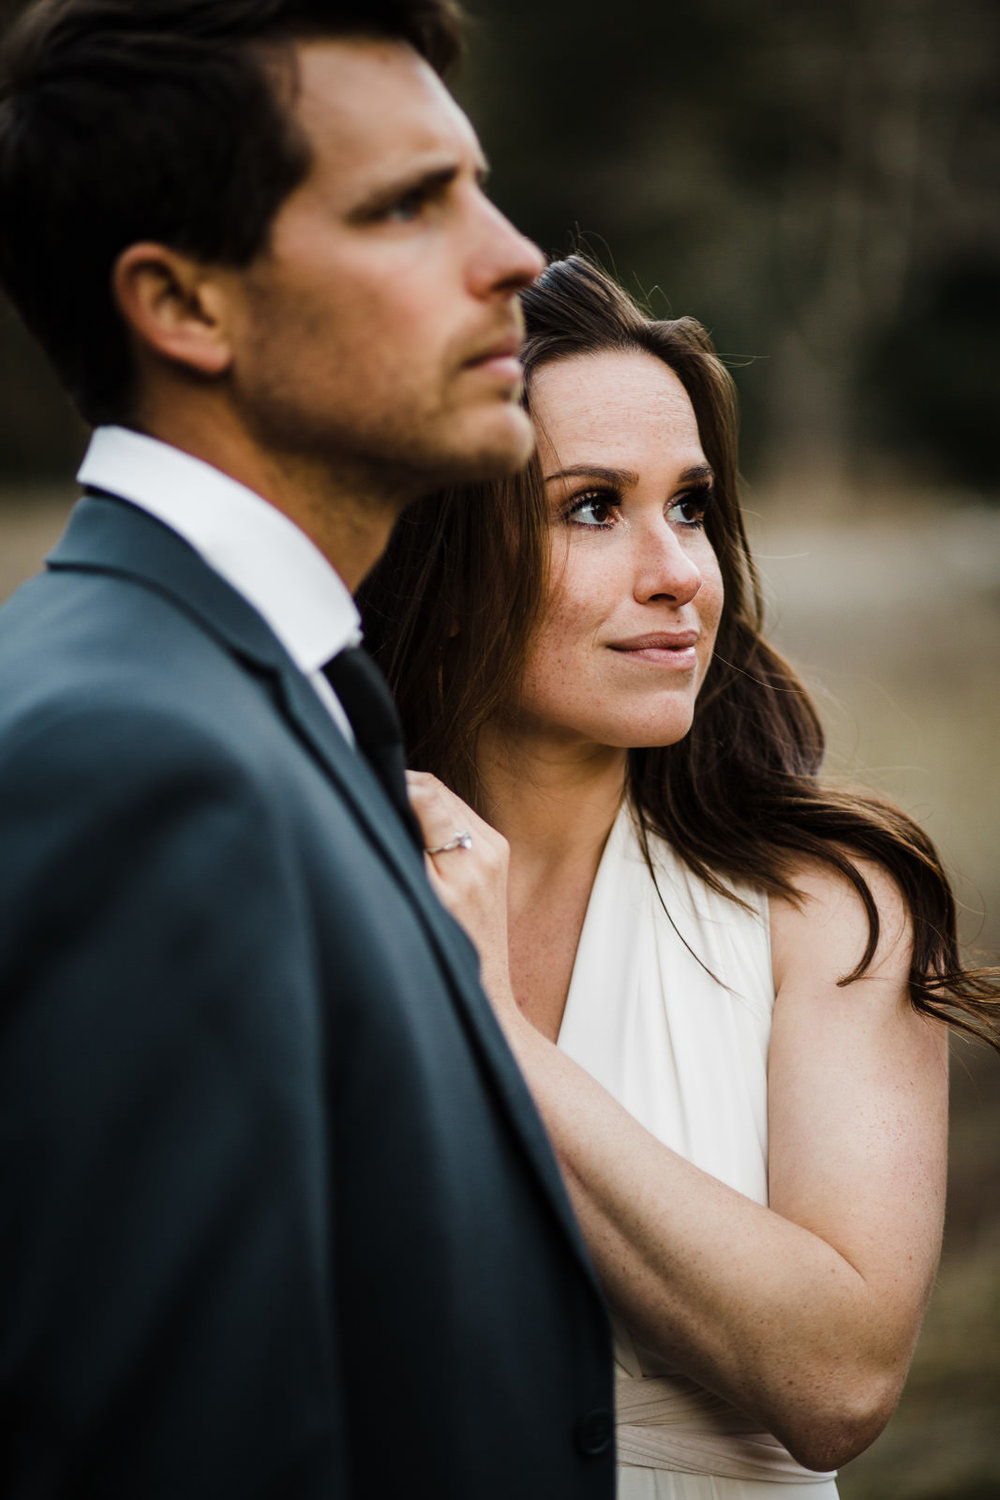 Yosemite-California-Elopement-Wedding-Photographer-Daniela-Vallant (54).jpg